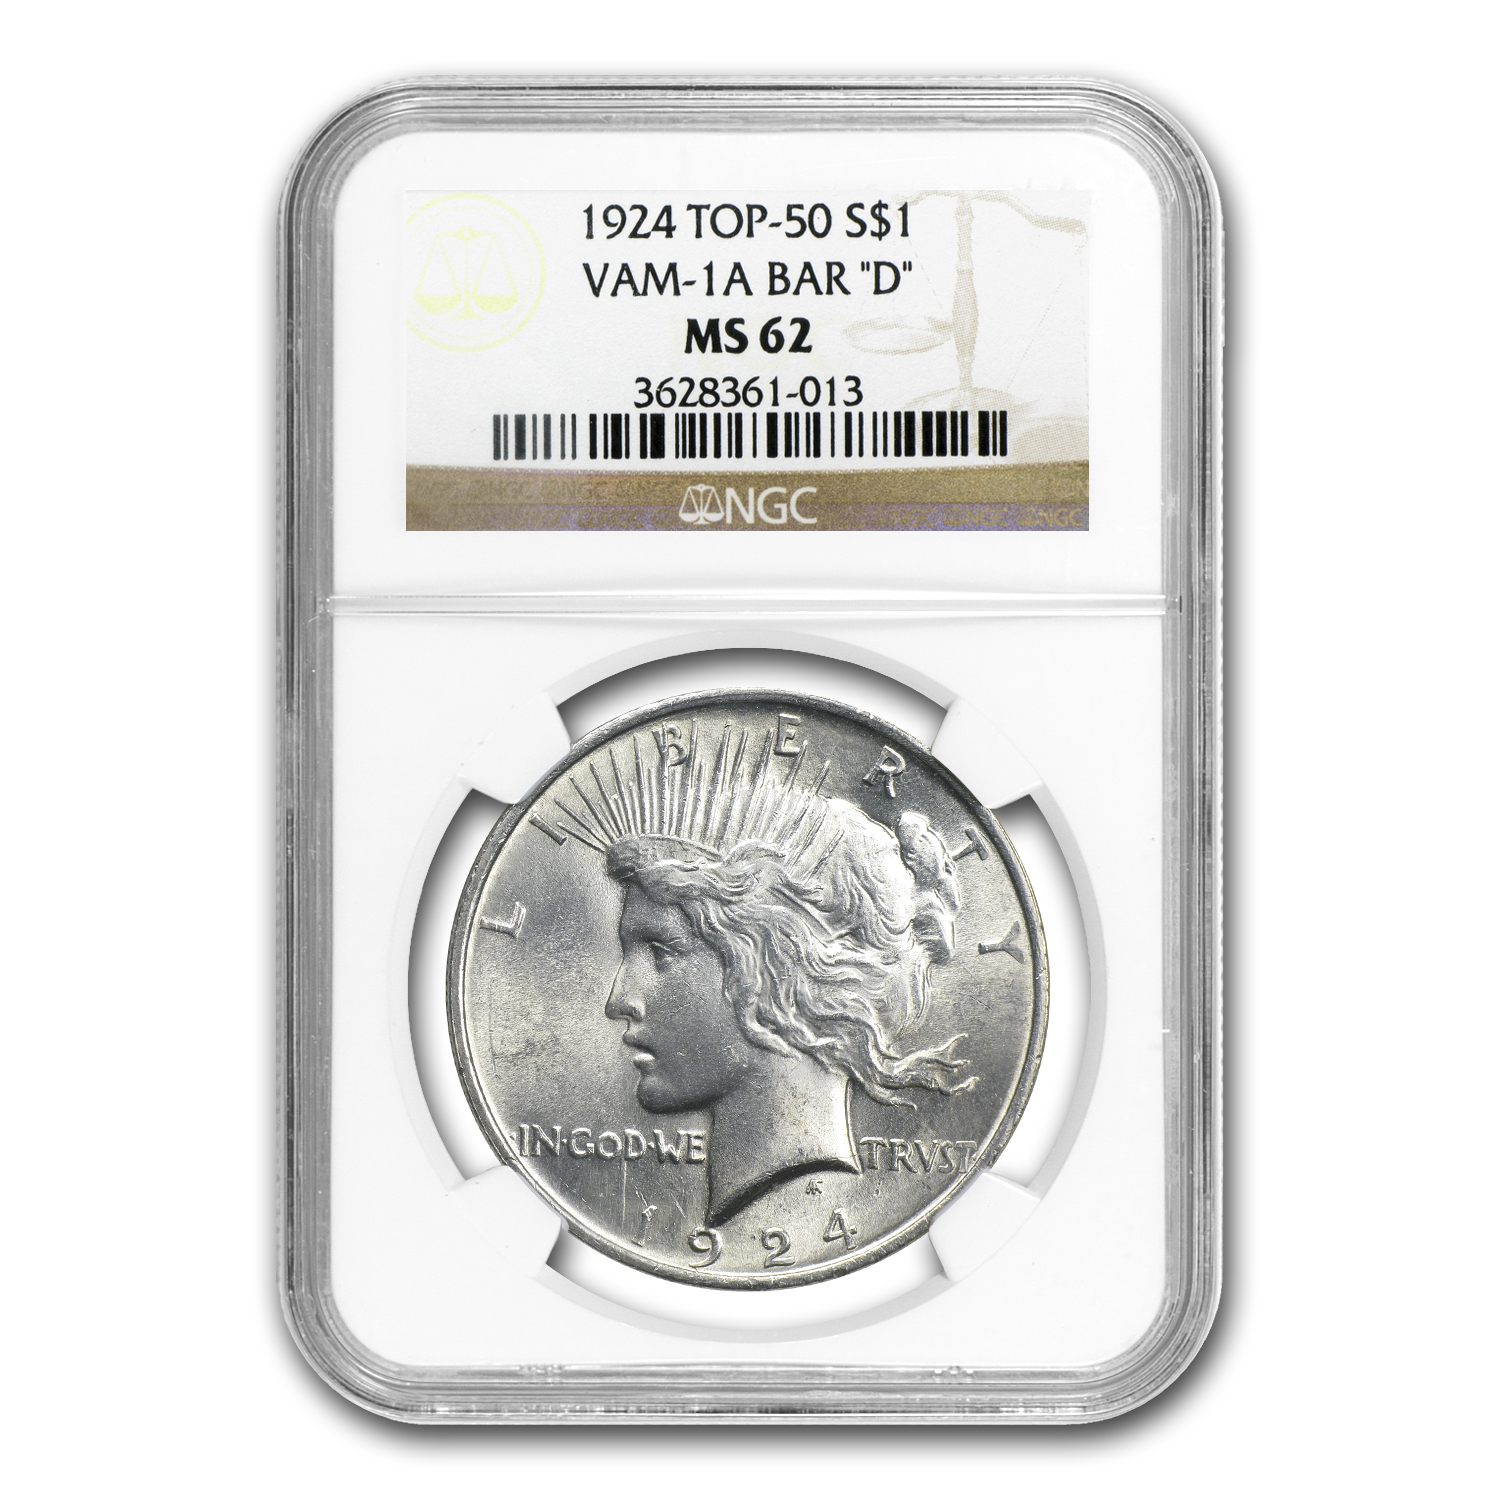 1924 Peace Dollar MS-62 NGC (VAM-1A, Bar D, Top-50)